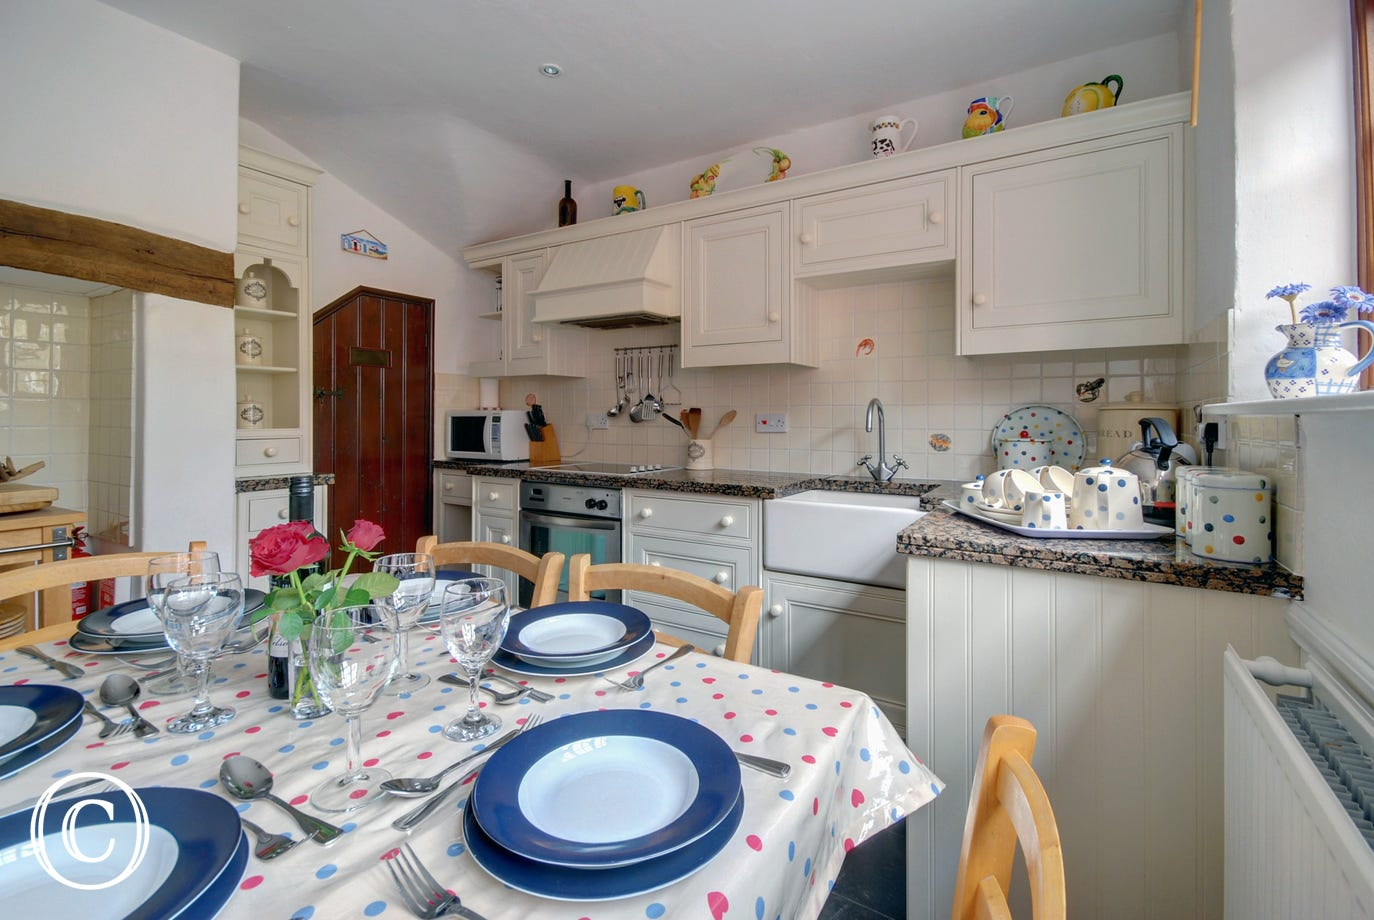 Enjoy meals together in the cosy country kitchen